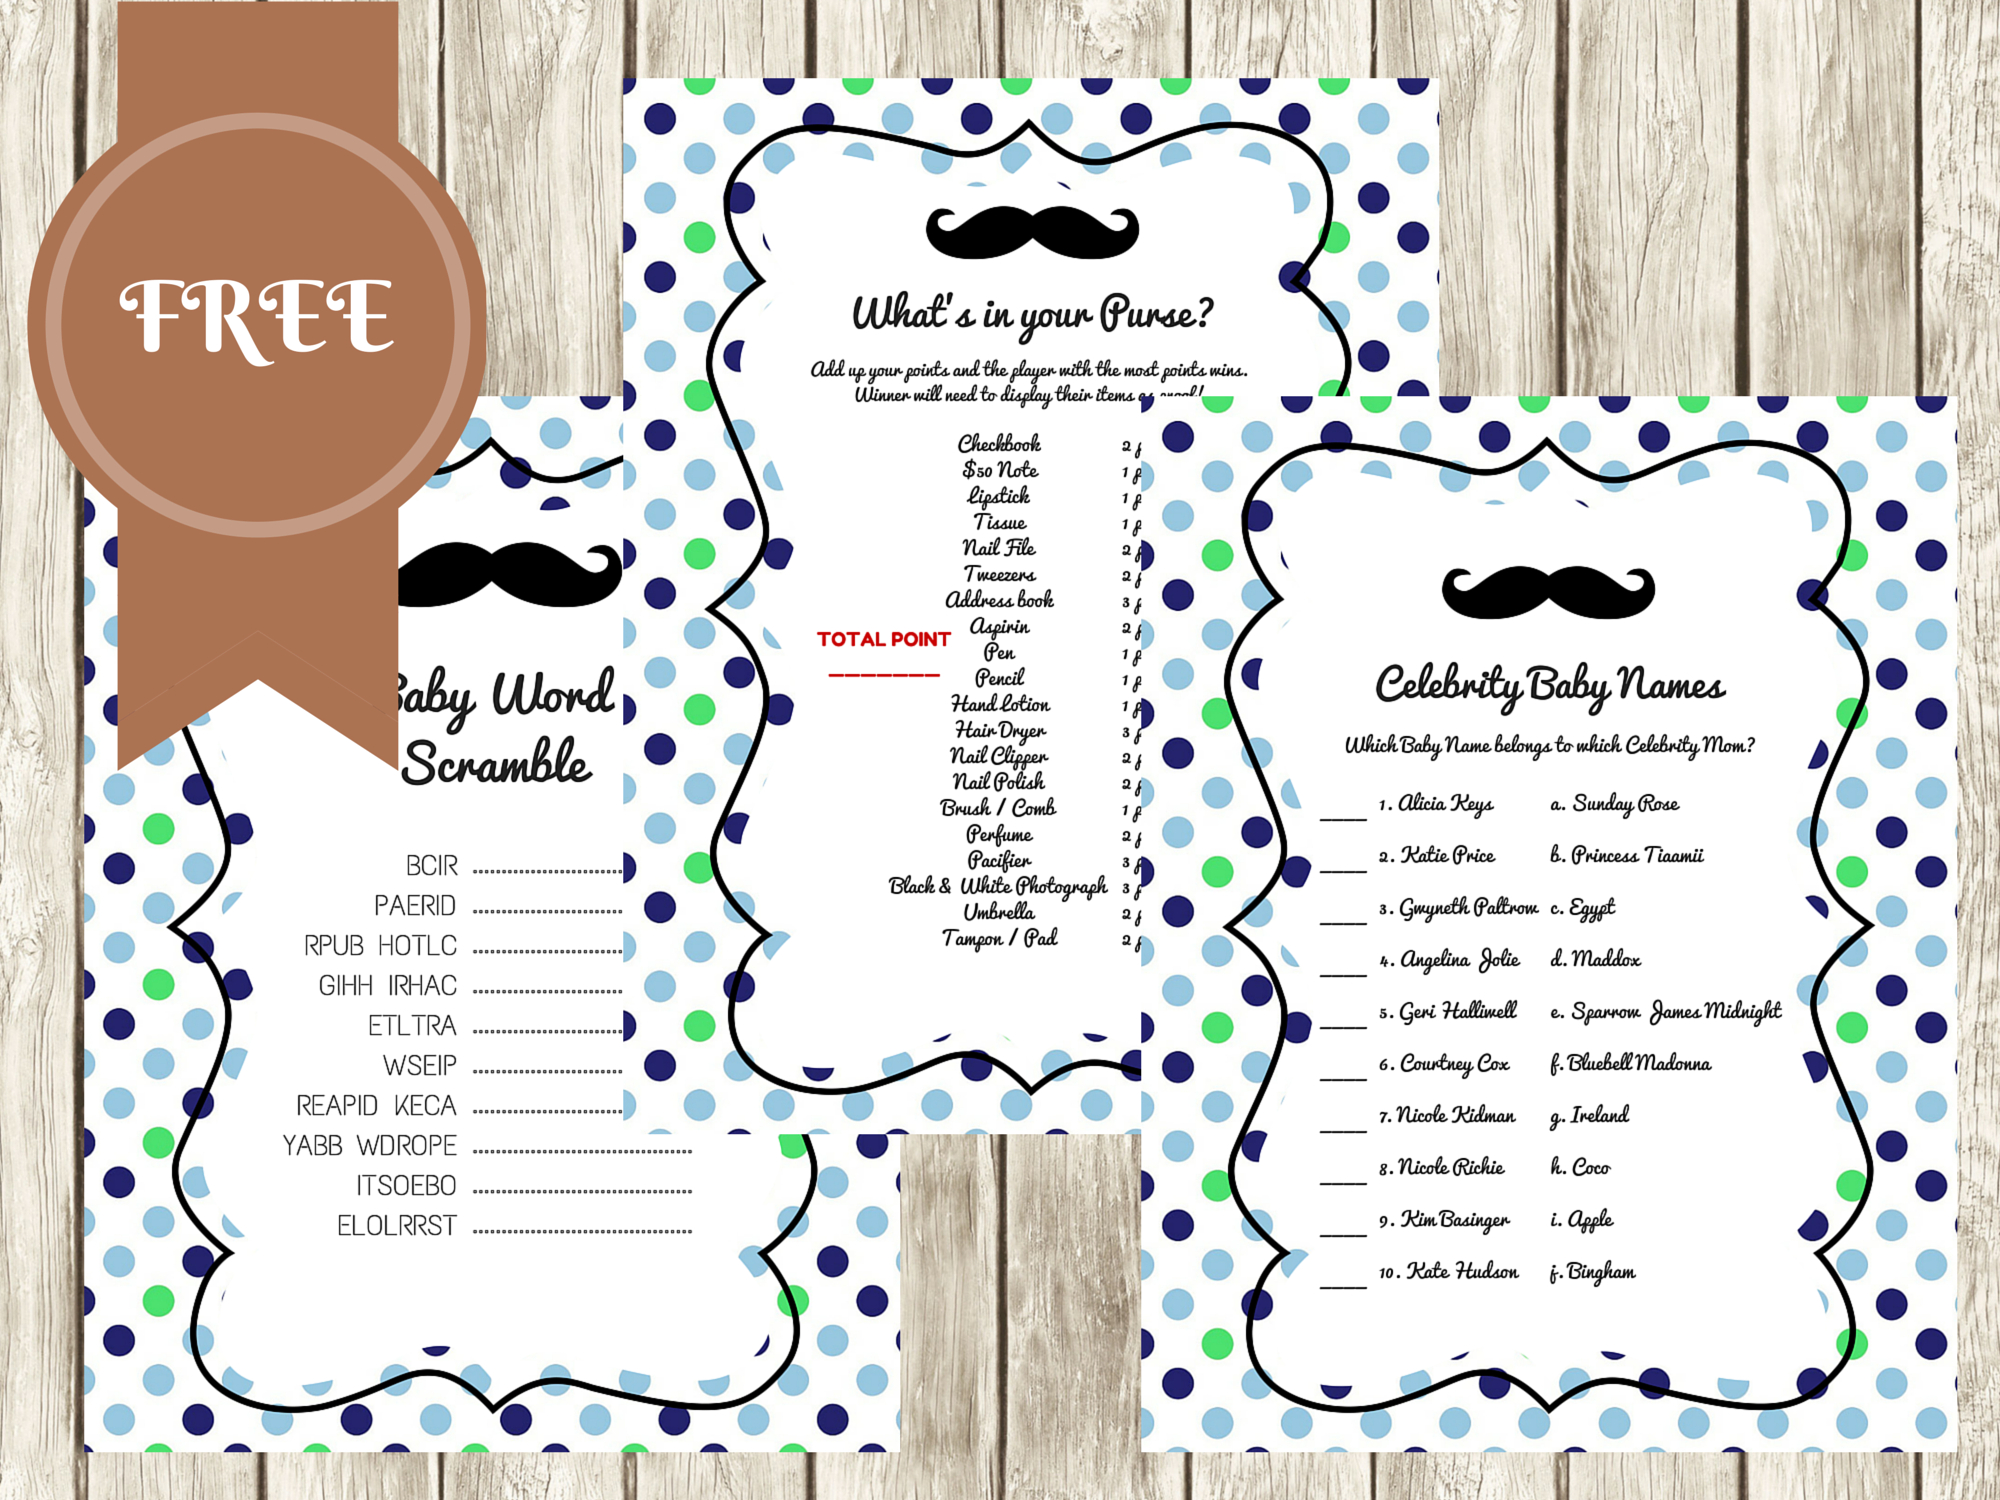 Free Mustache Baby Shower Games - Baby Shower Ideas - Themes - Games - What's In Your Phone Baby Shower Game Free Printable